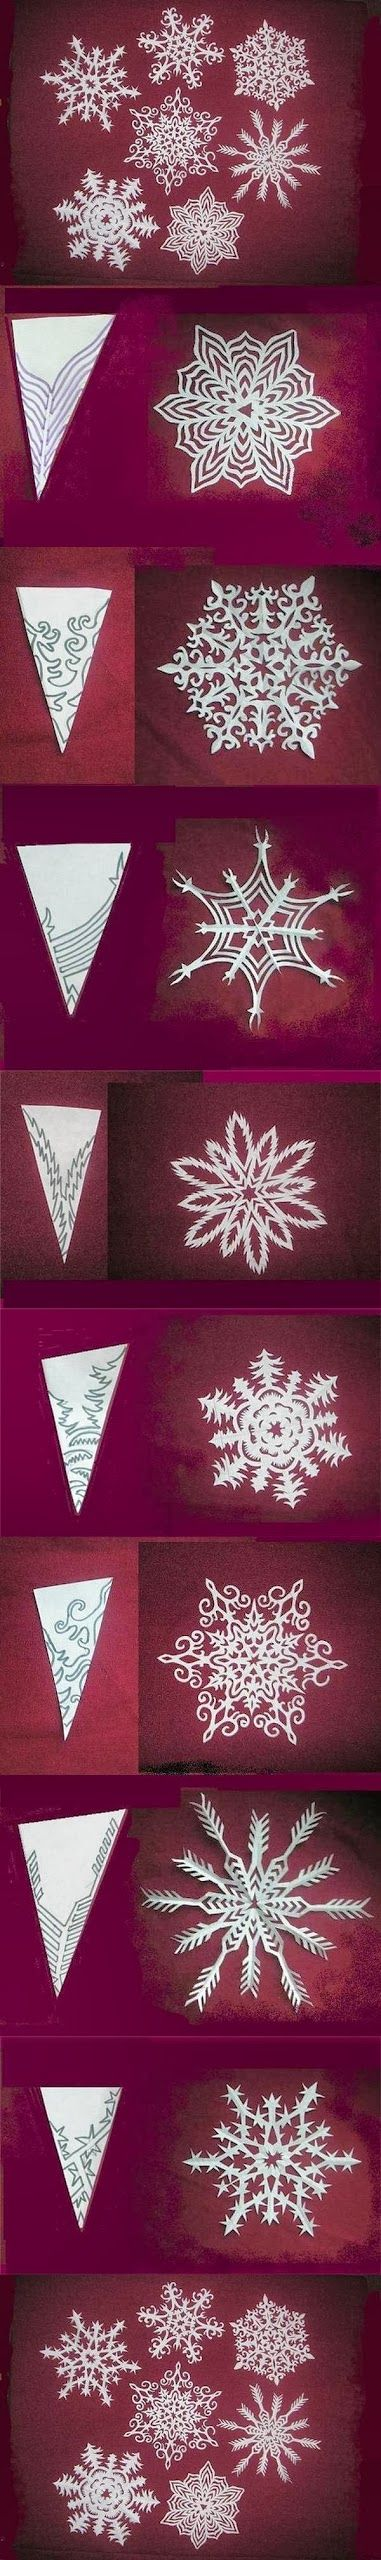 DIY : Snowflakes Paper Pattern Tutorial | DIY & Crafts Tutorials